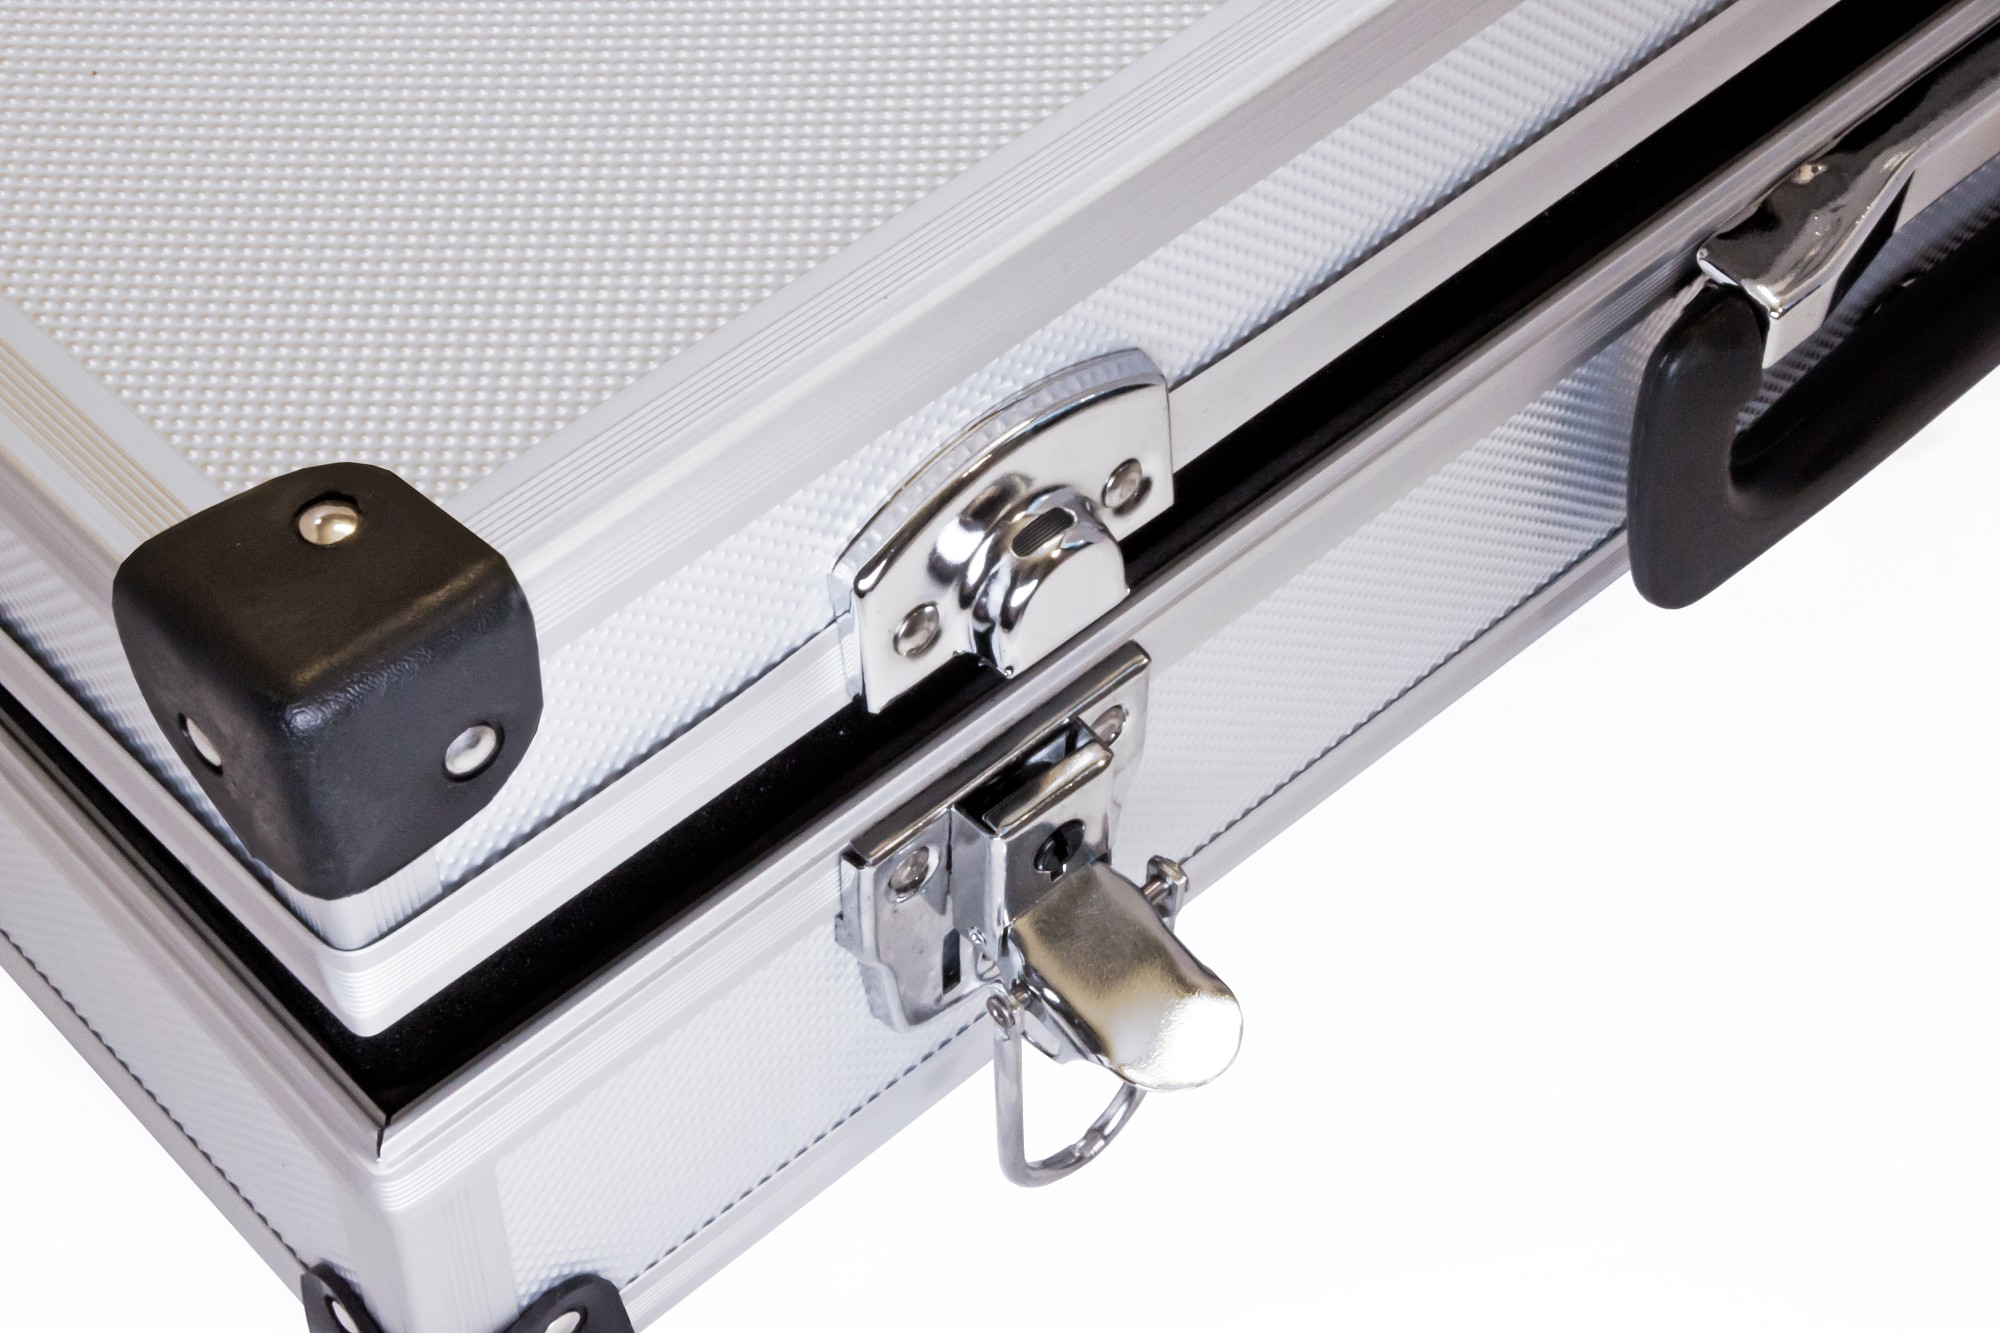 «PeakTech® P 7270» Carrying Case for Measurement Instruments